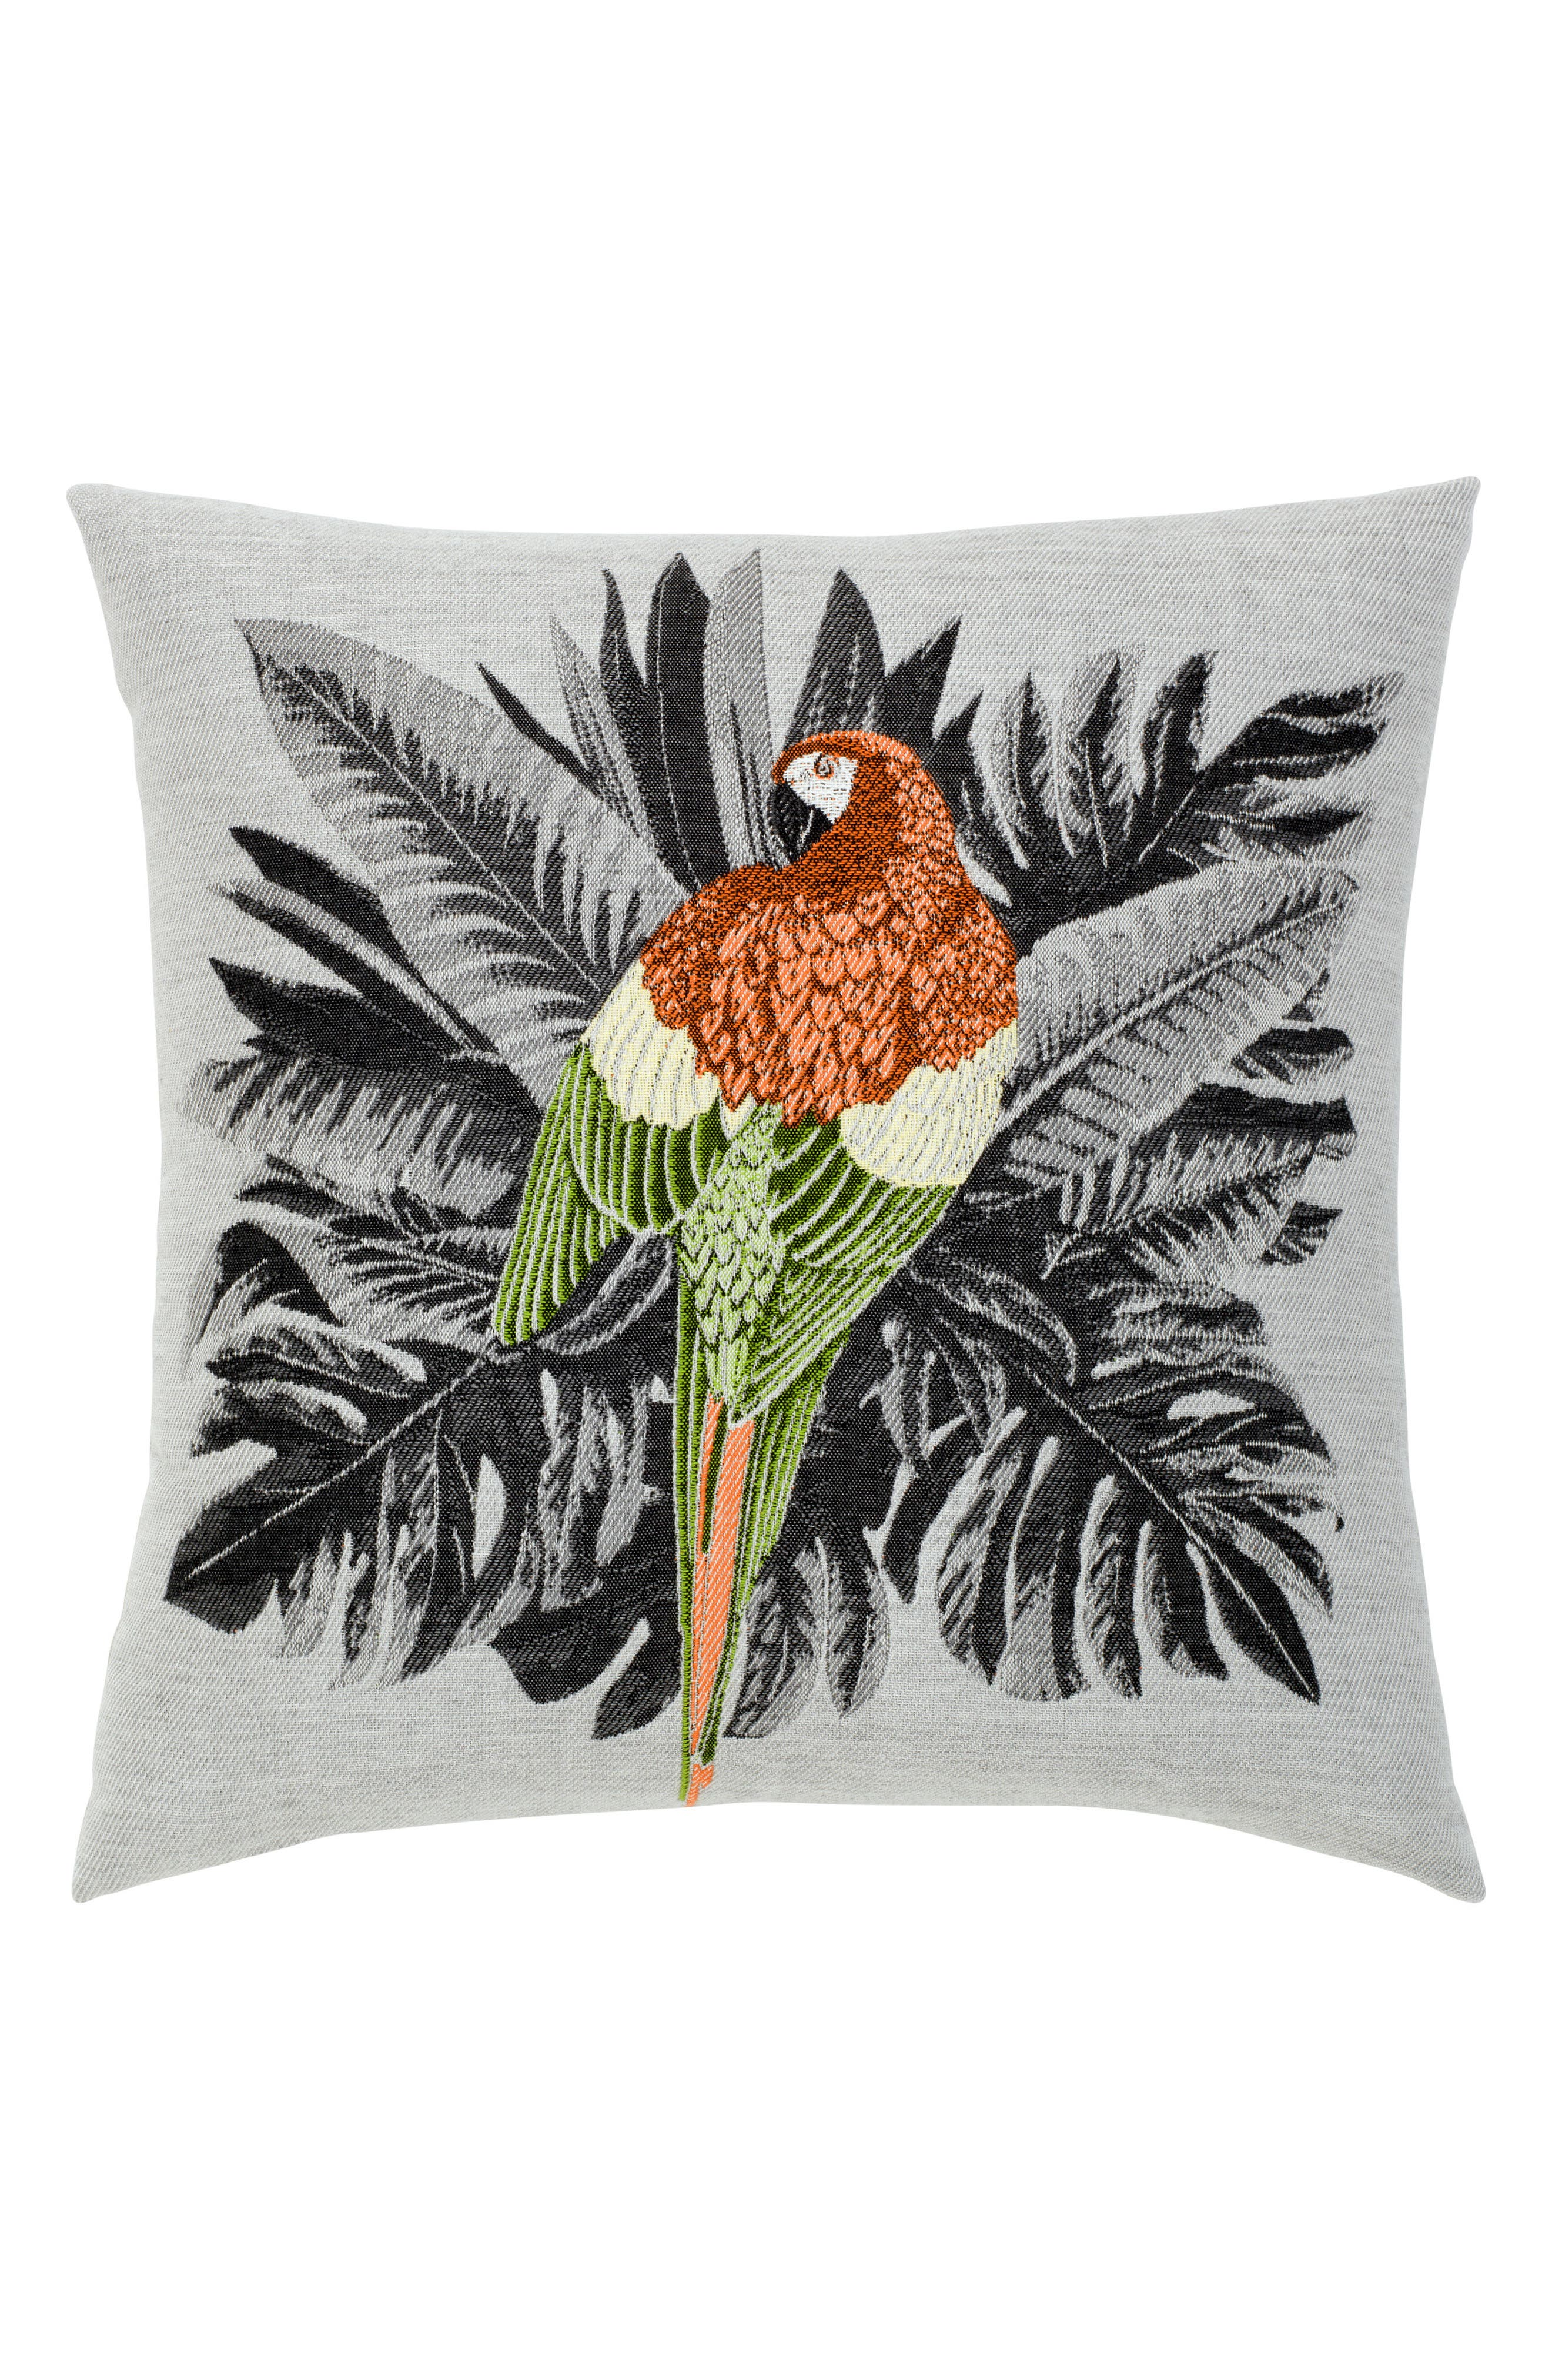 Macaw Indoor/Outdoor Accent Pillow,                             Main thumbnail 1, color,                             020